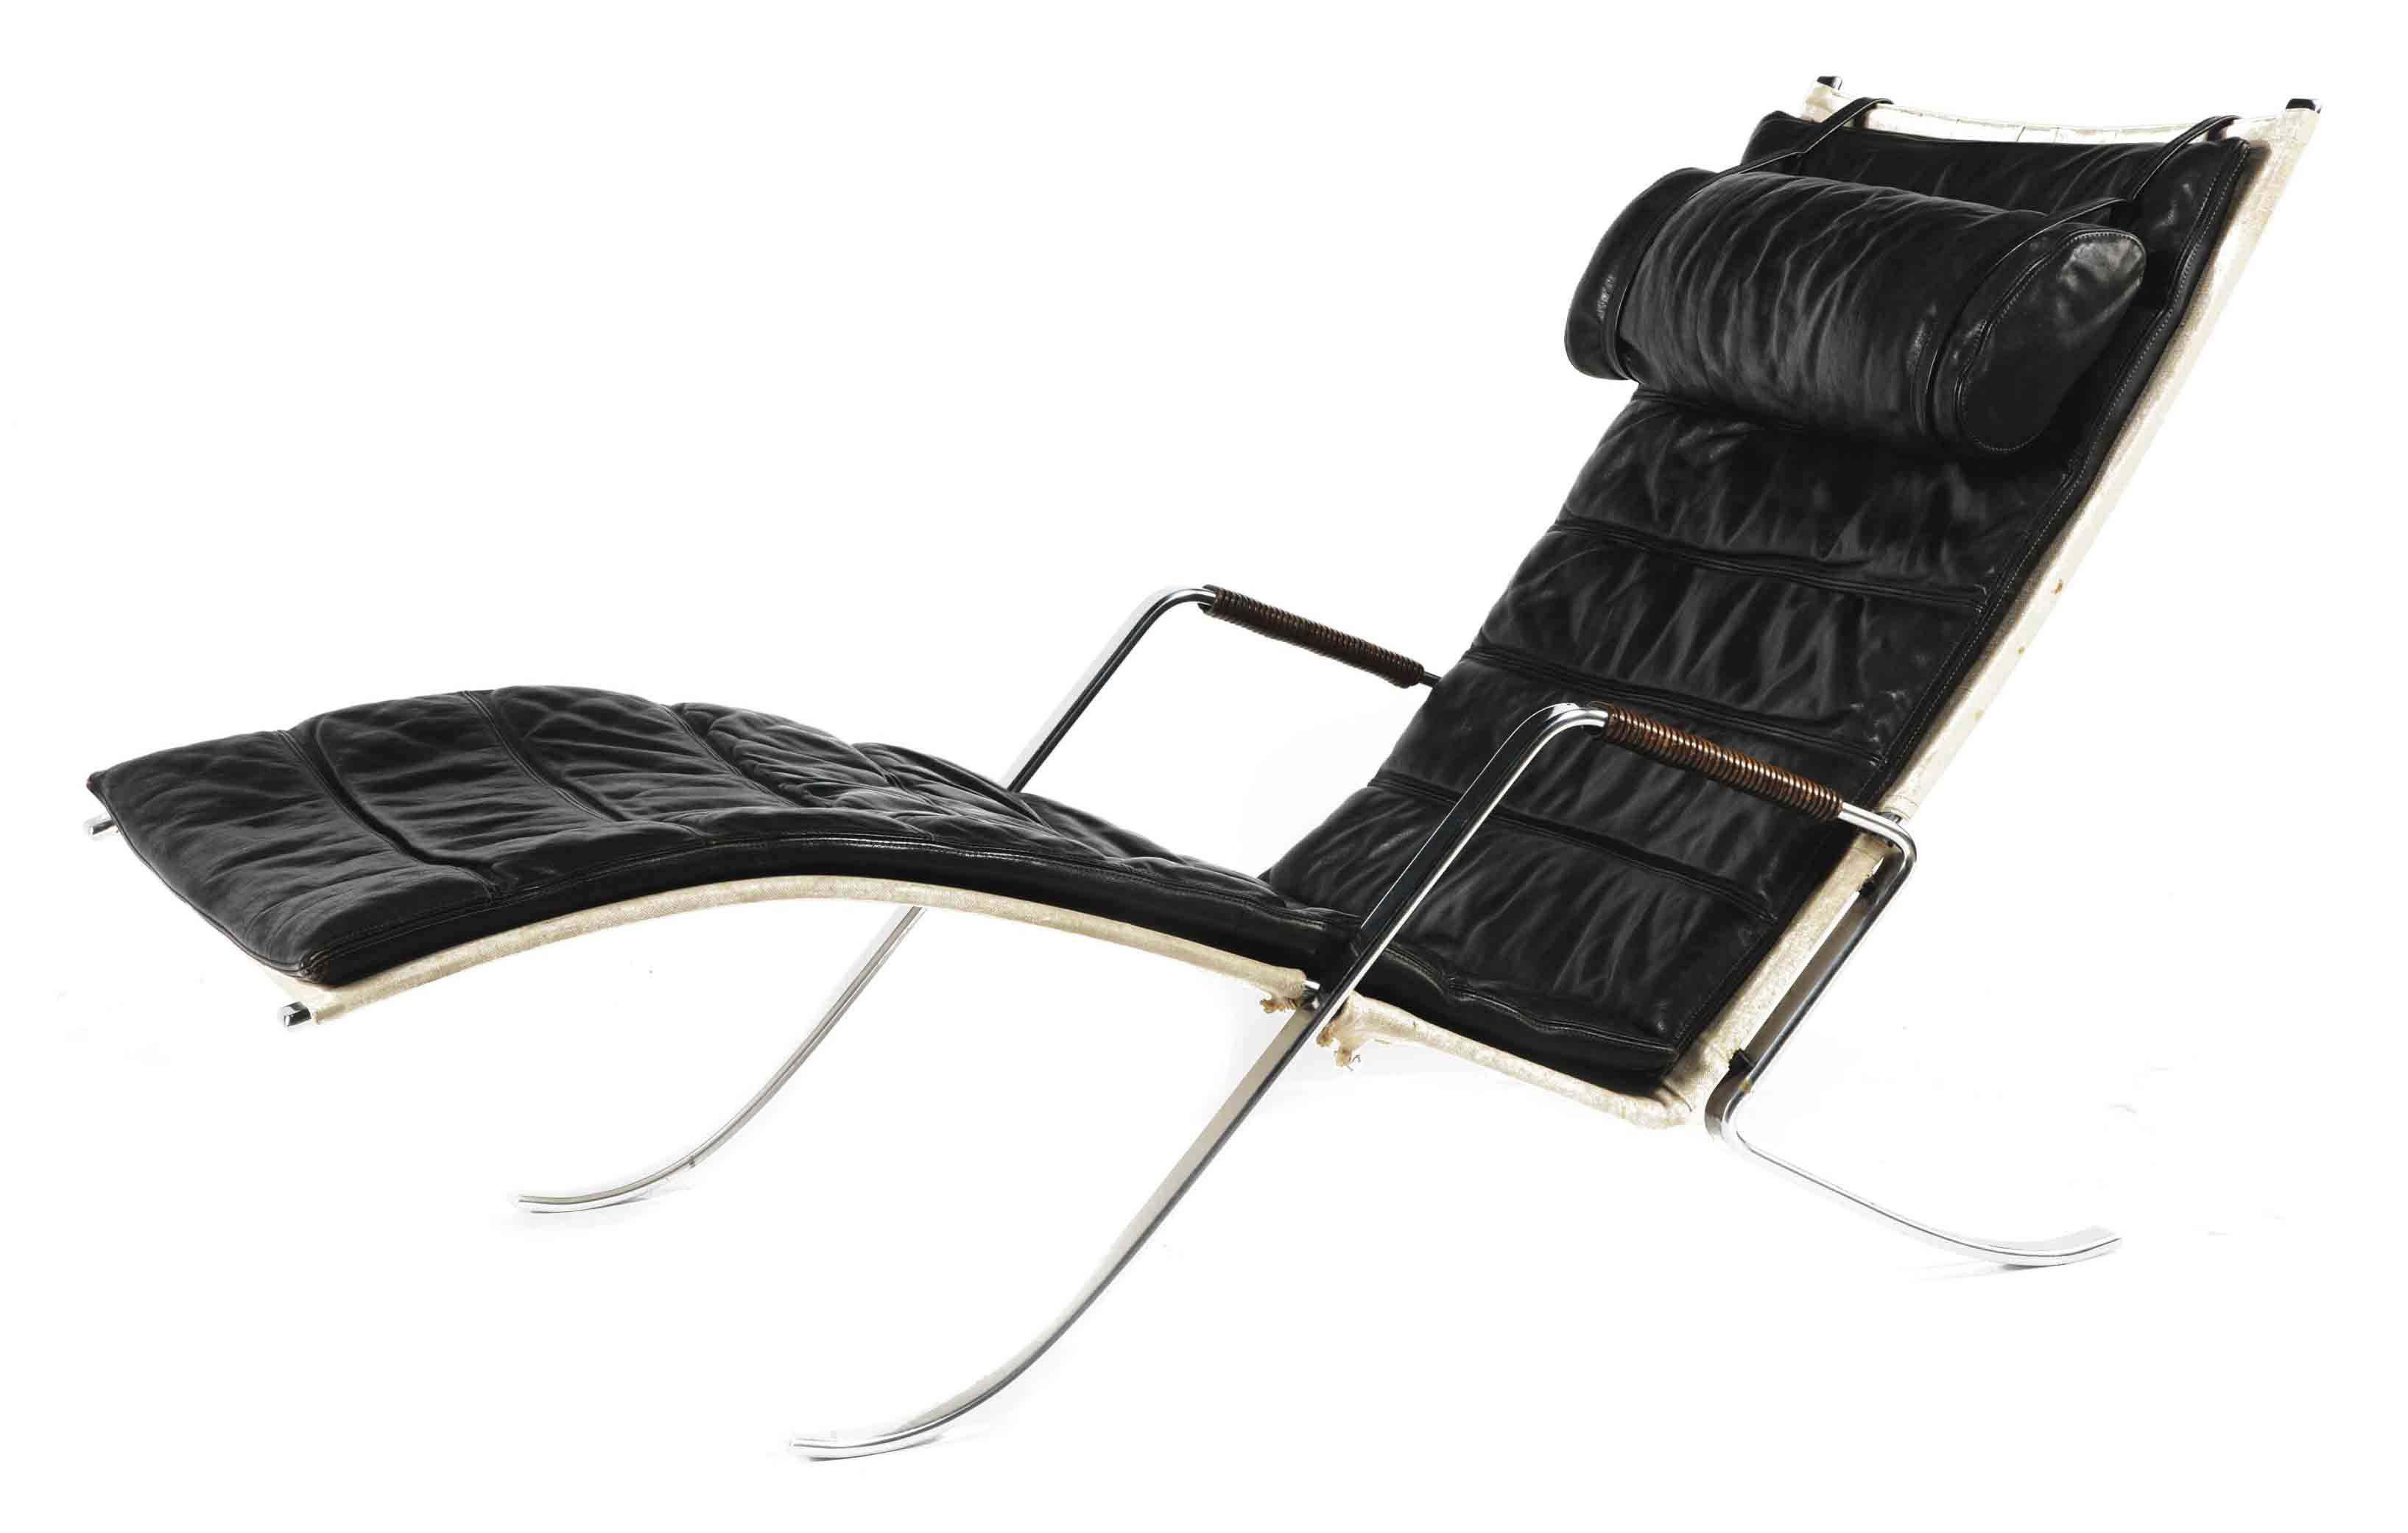 A CHROME STEEL CHAISE LONGUE OR DAYBED 'GRASSHOPPER' MODEL NO.'FK 87'